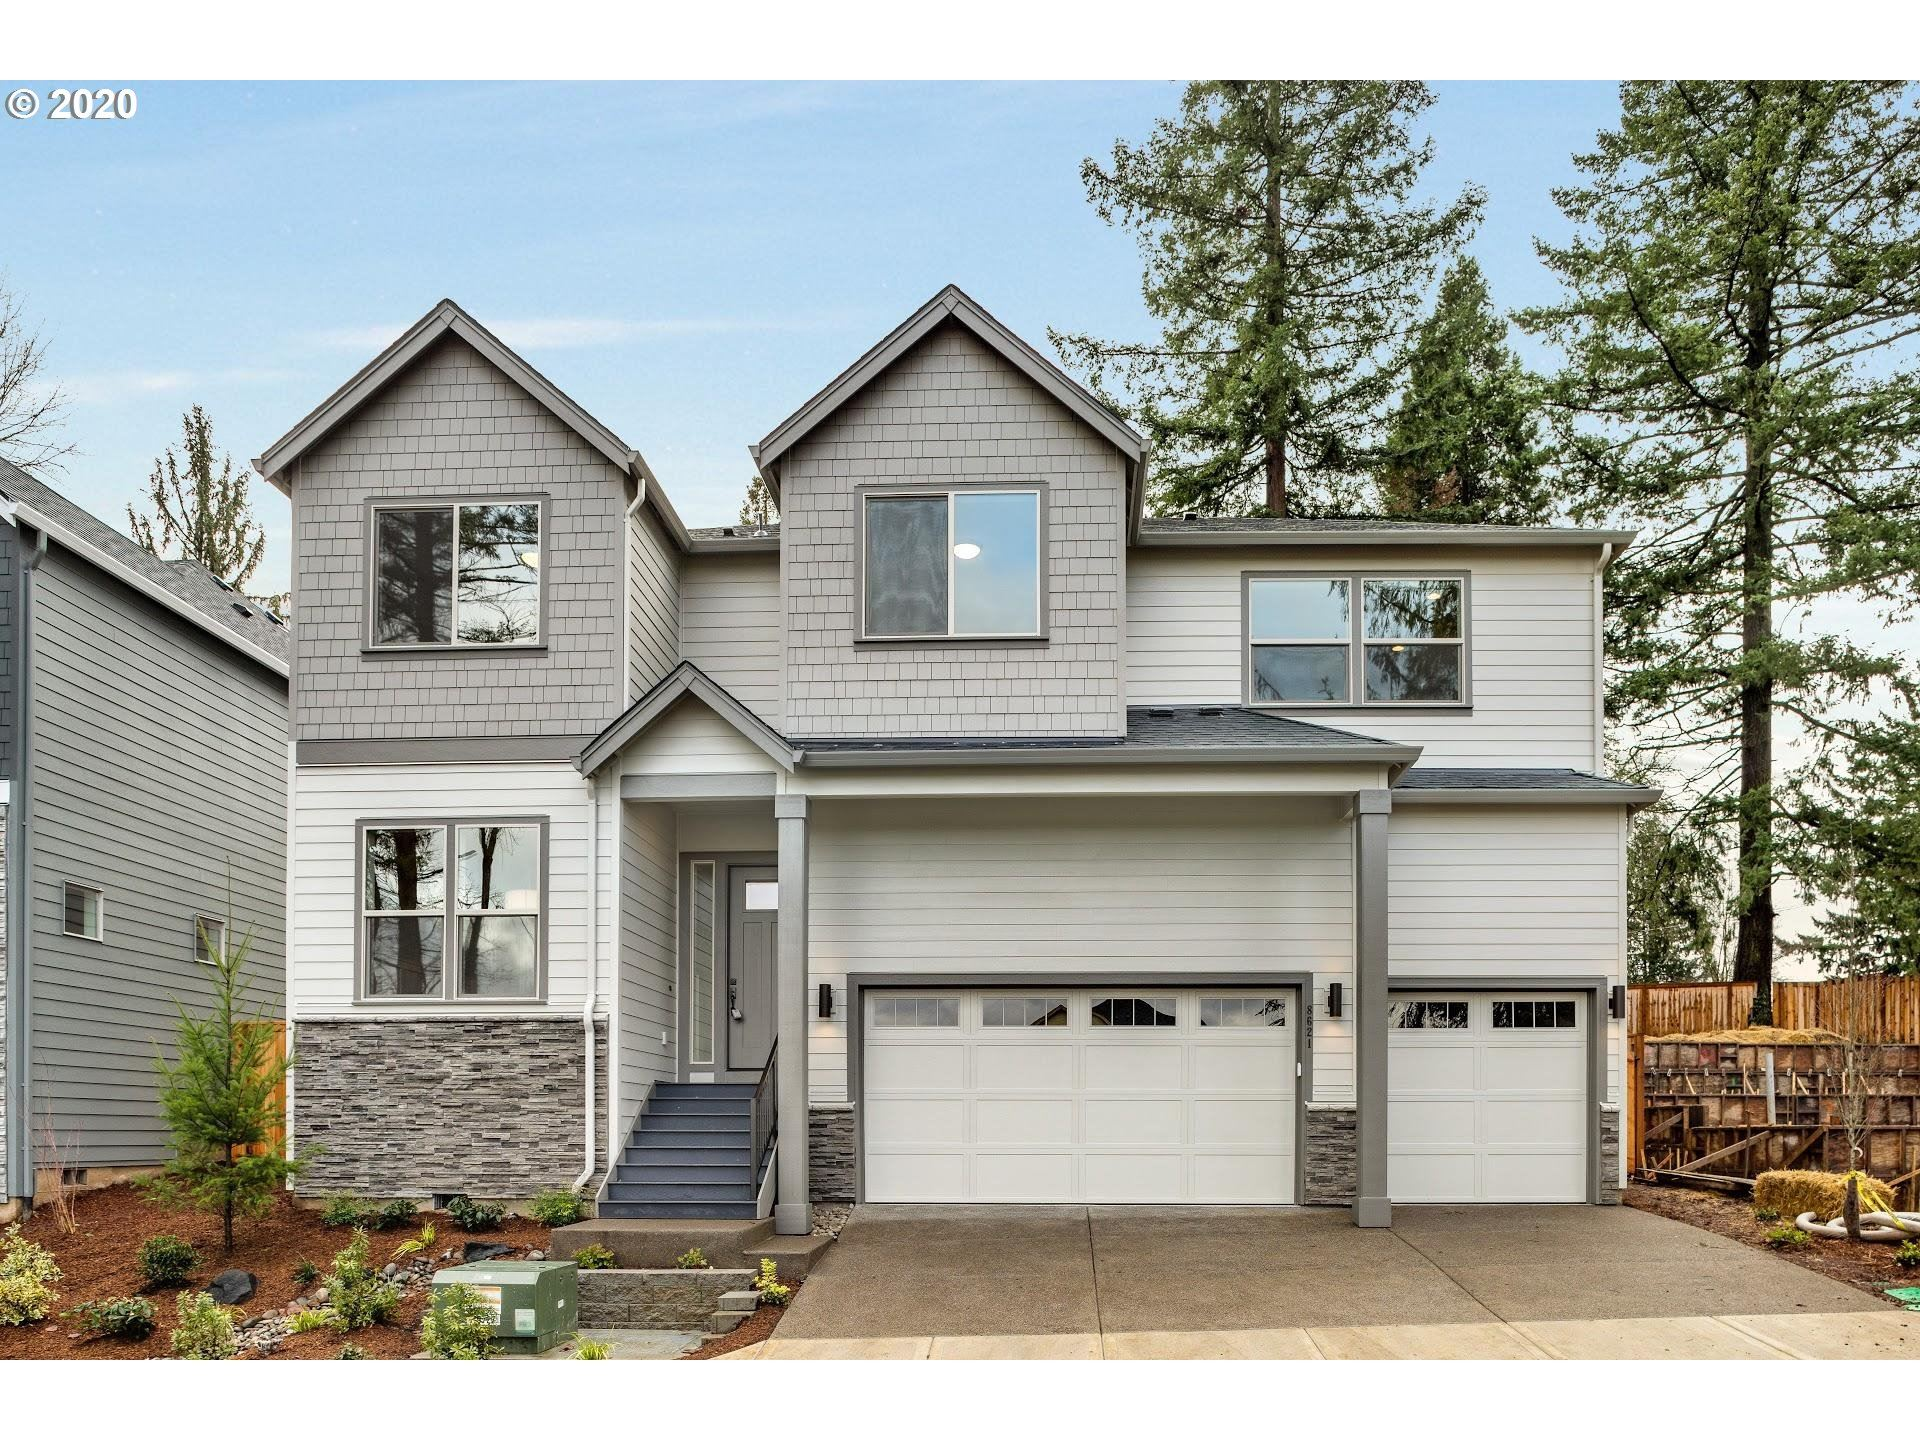 8621 SW CAIDEN TER, Portland, OR 97223 - MLS#: 20403753